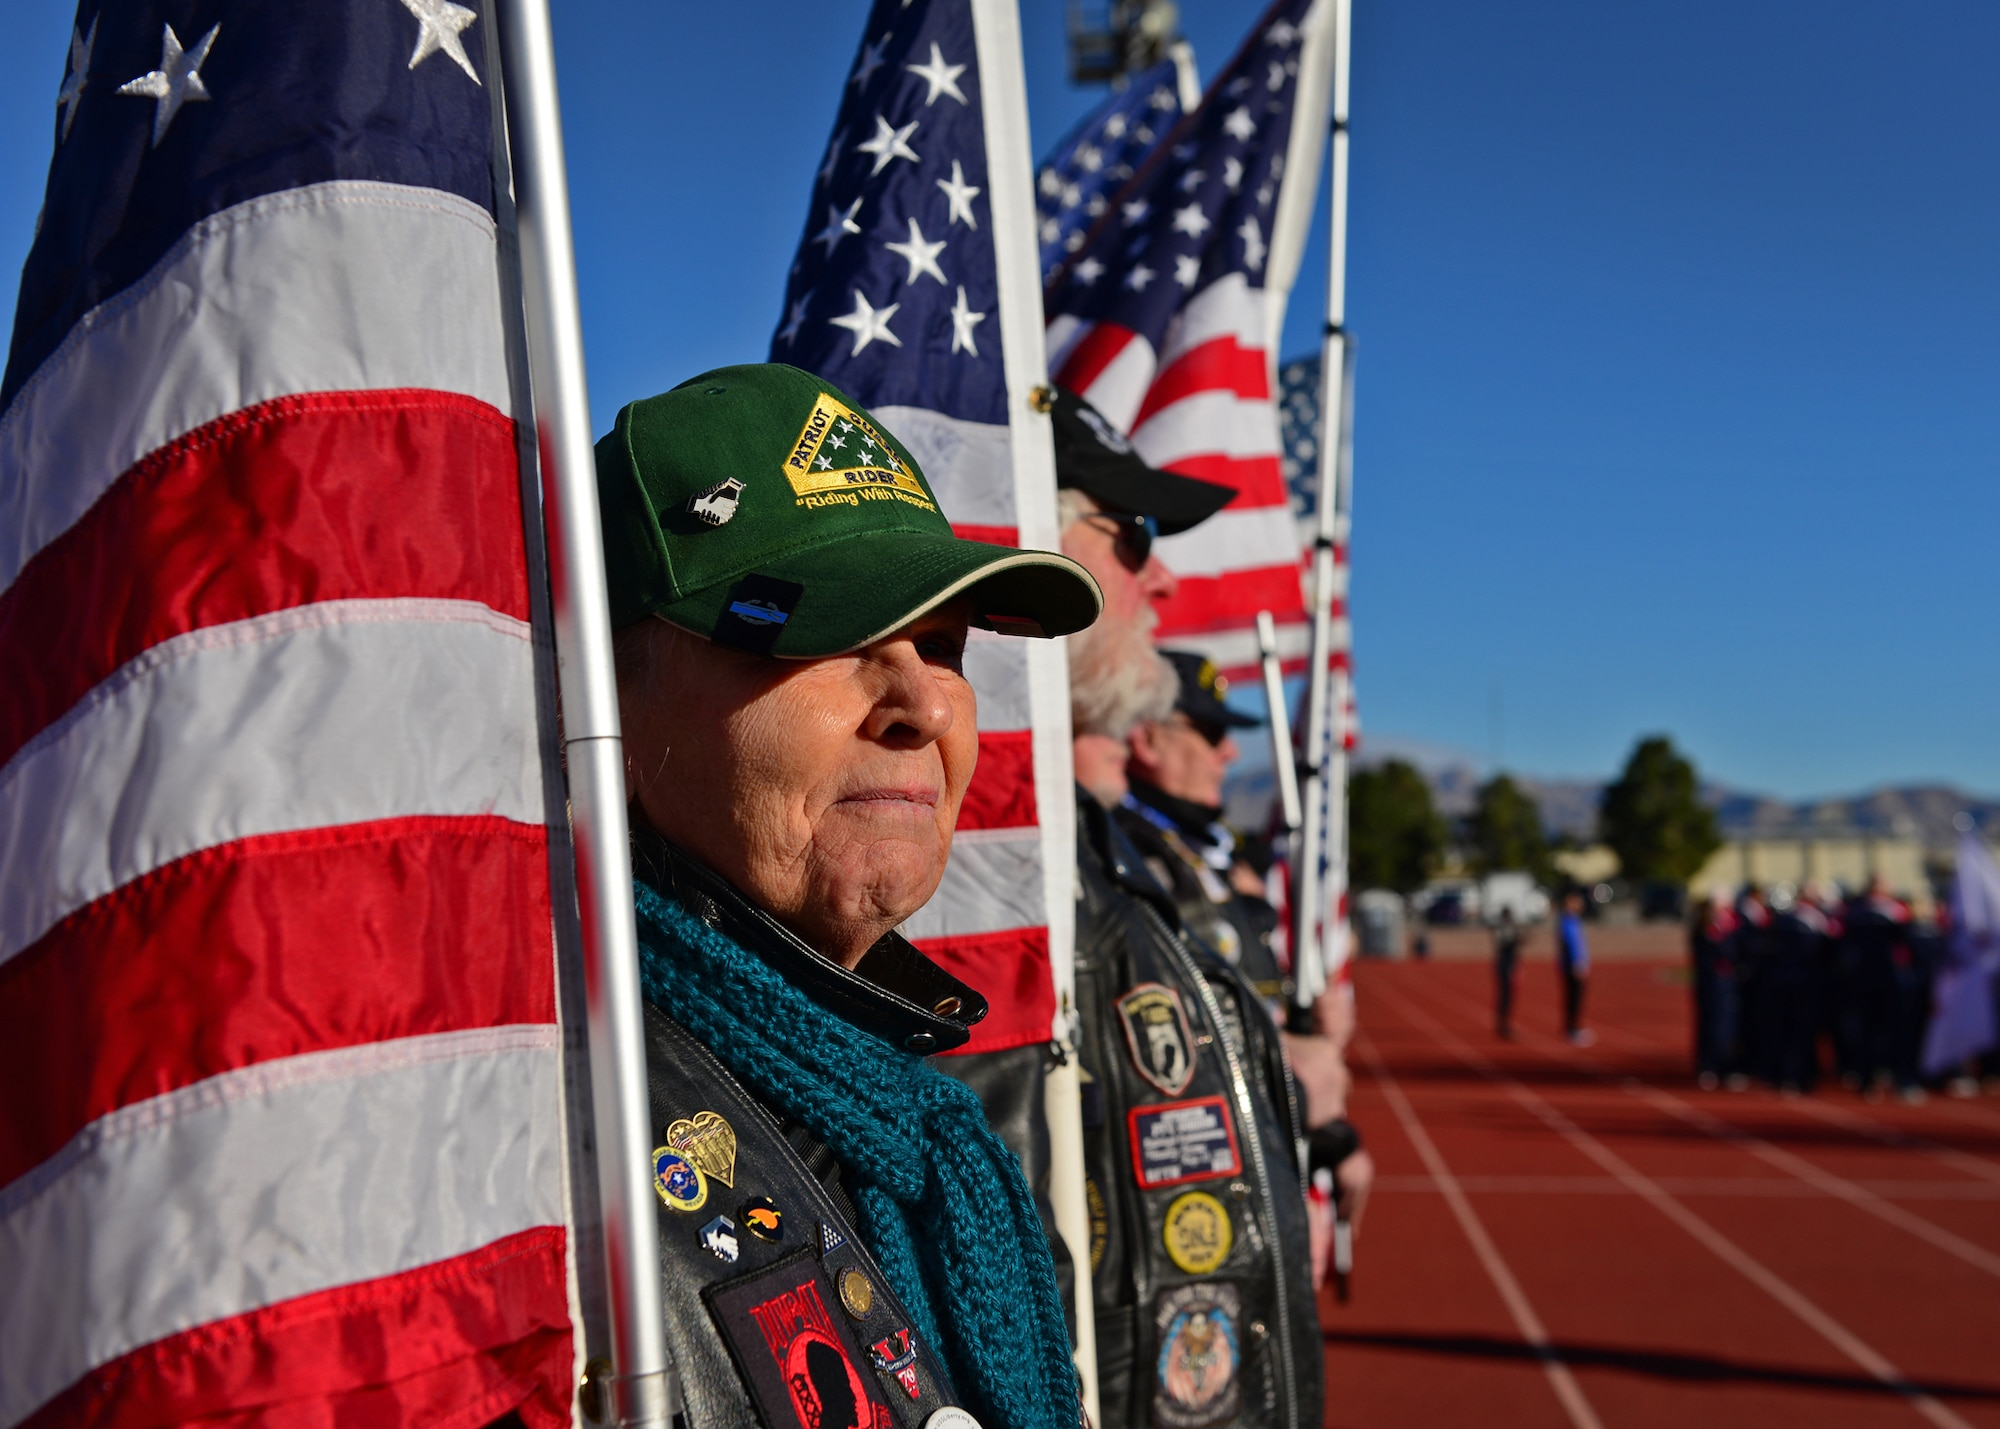 A member of the Patriot Guard Riders welcomes competitors of the 2017 Air Force Warrior Game Trials outside the Warrior Fitness Center Feb. 24, 2017 at Nellis Air Force Base, Nev. These trials are part of an adaptive sports program, headed by the Wounded Warrior Program, designed to promote the mental and physical wellbeing of seriously wounded, ill and injured military members and veterans. (U.S. Air Force photo by Senior Airman Chip Pons)